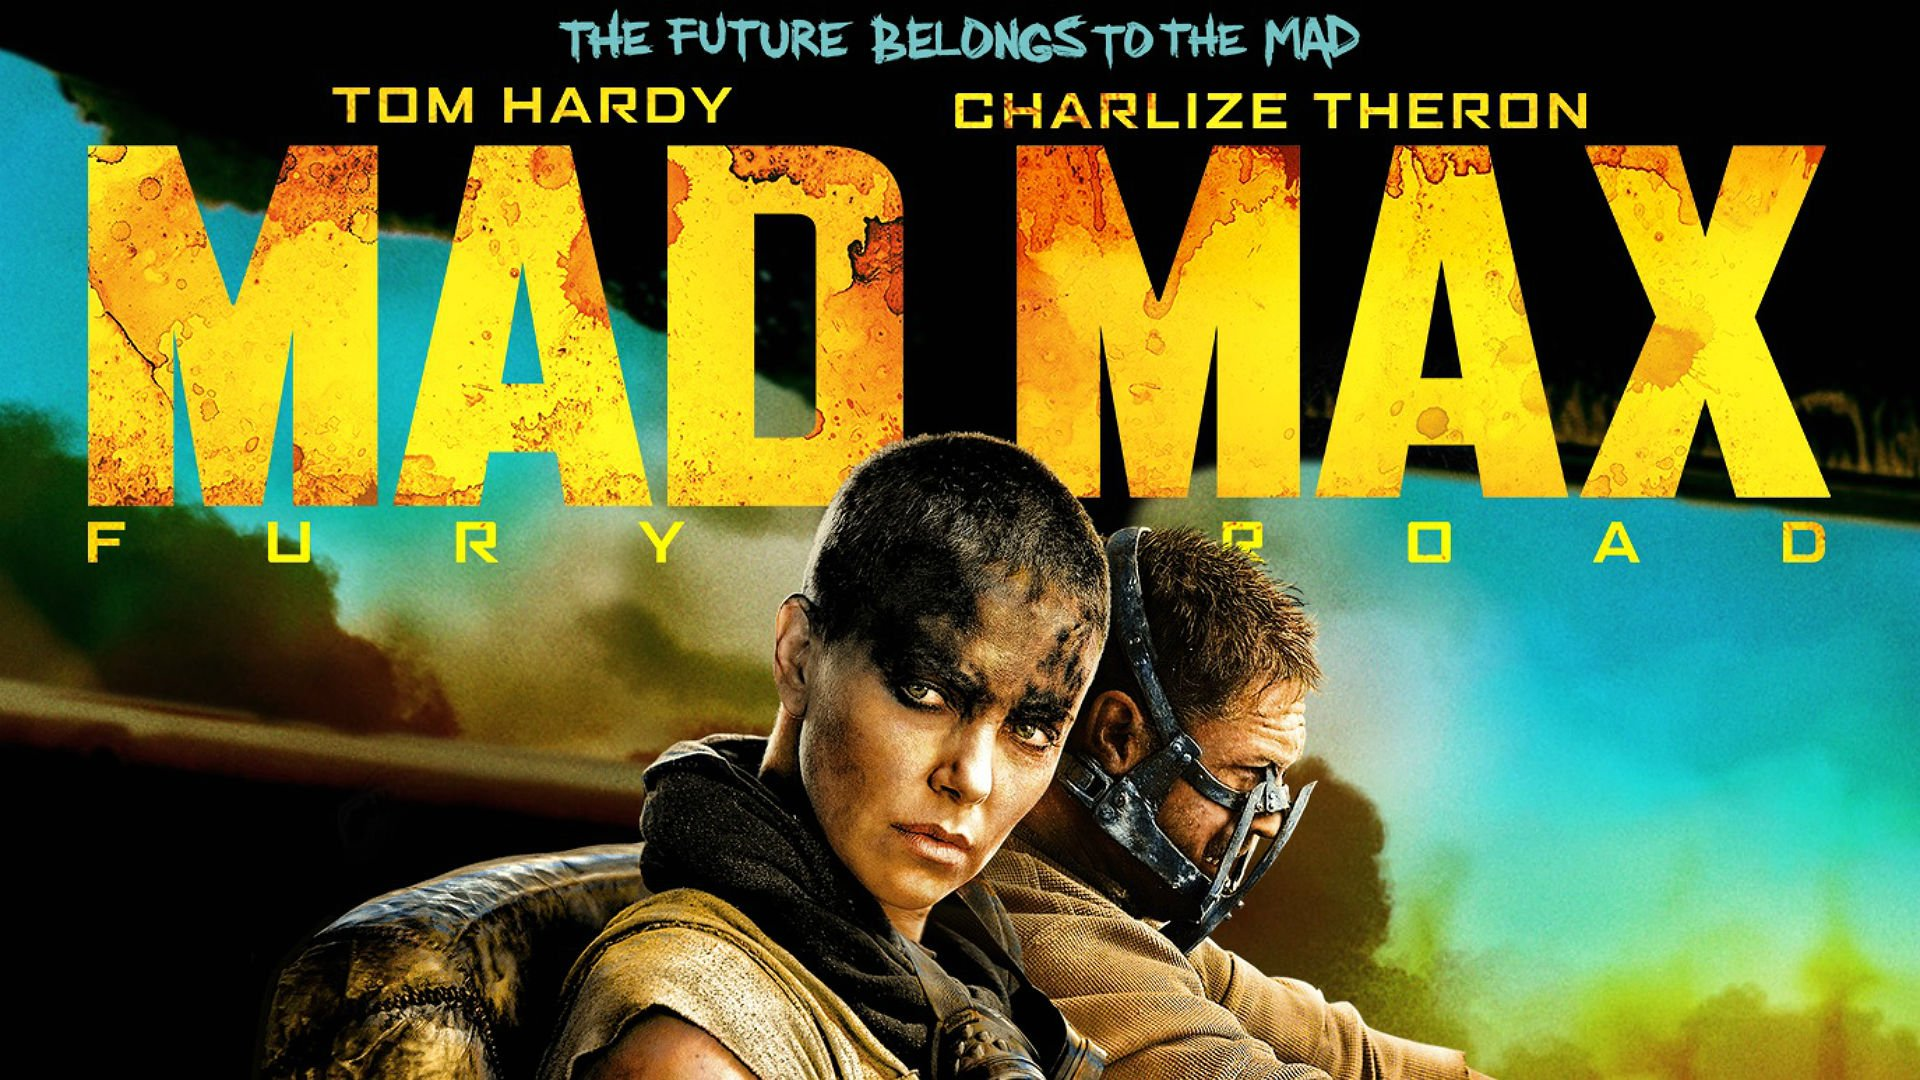 Harry gets shiny  chromey for every cinematic second in millers vehicular valhalla: mad max fury r